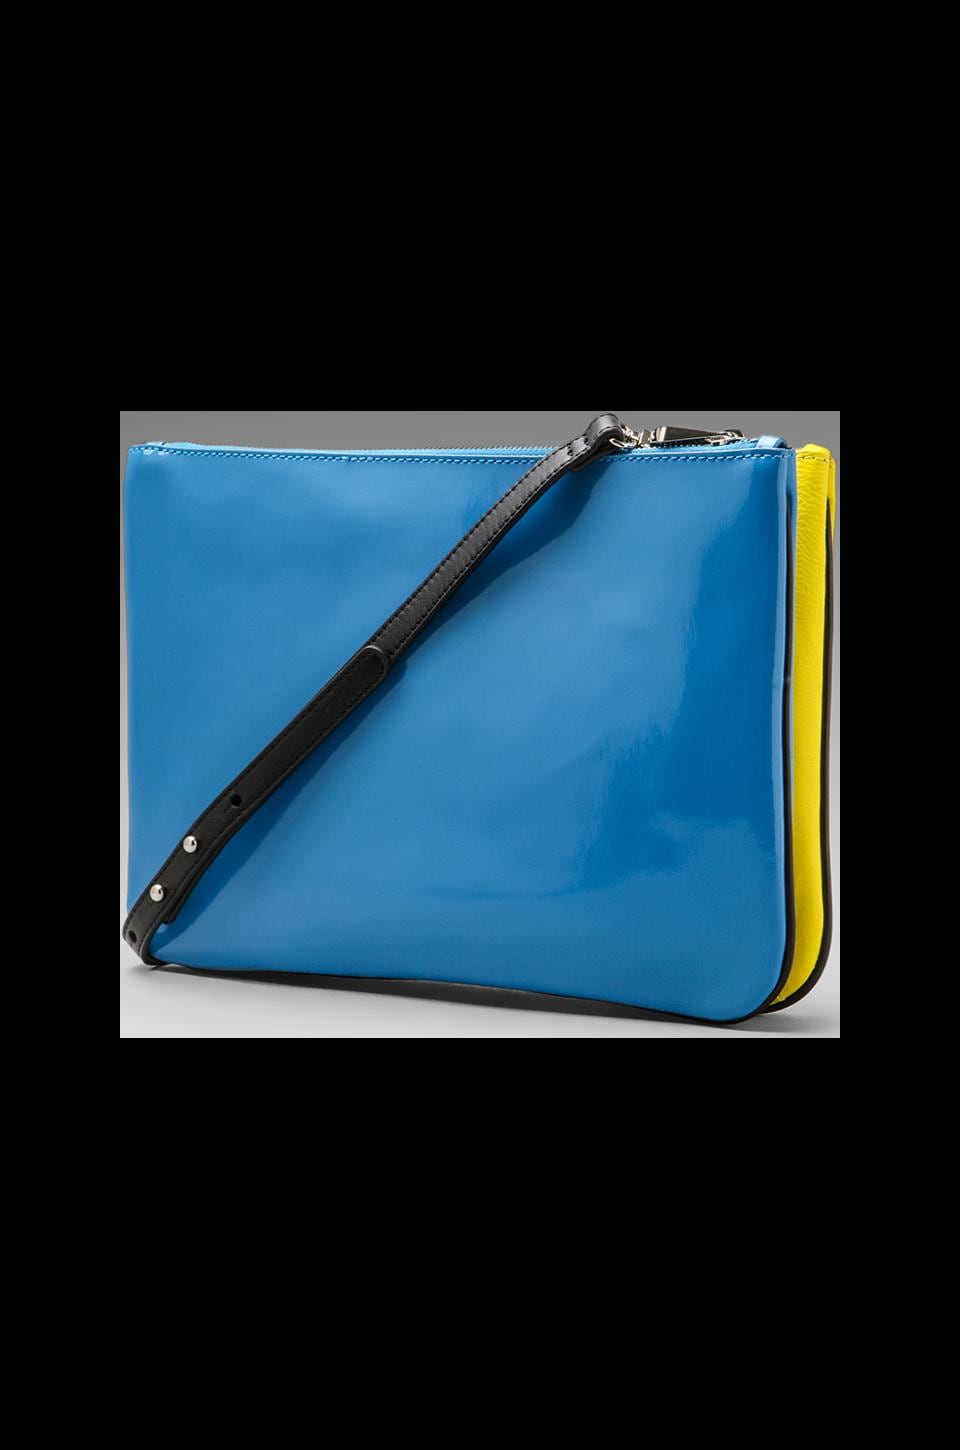 Pour La Victoire Melle Convertible Ipad Clutch in Blue/Butter